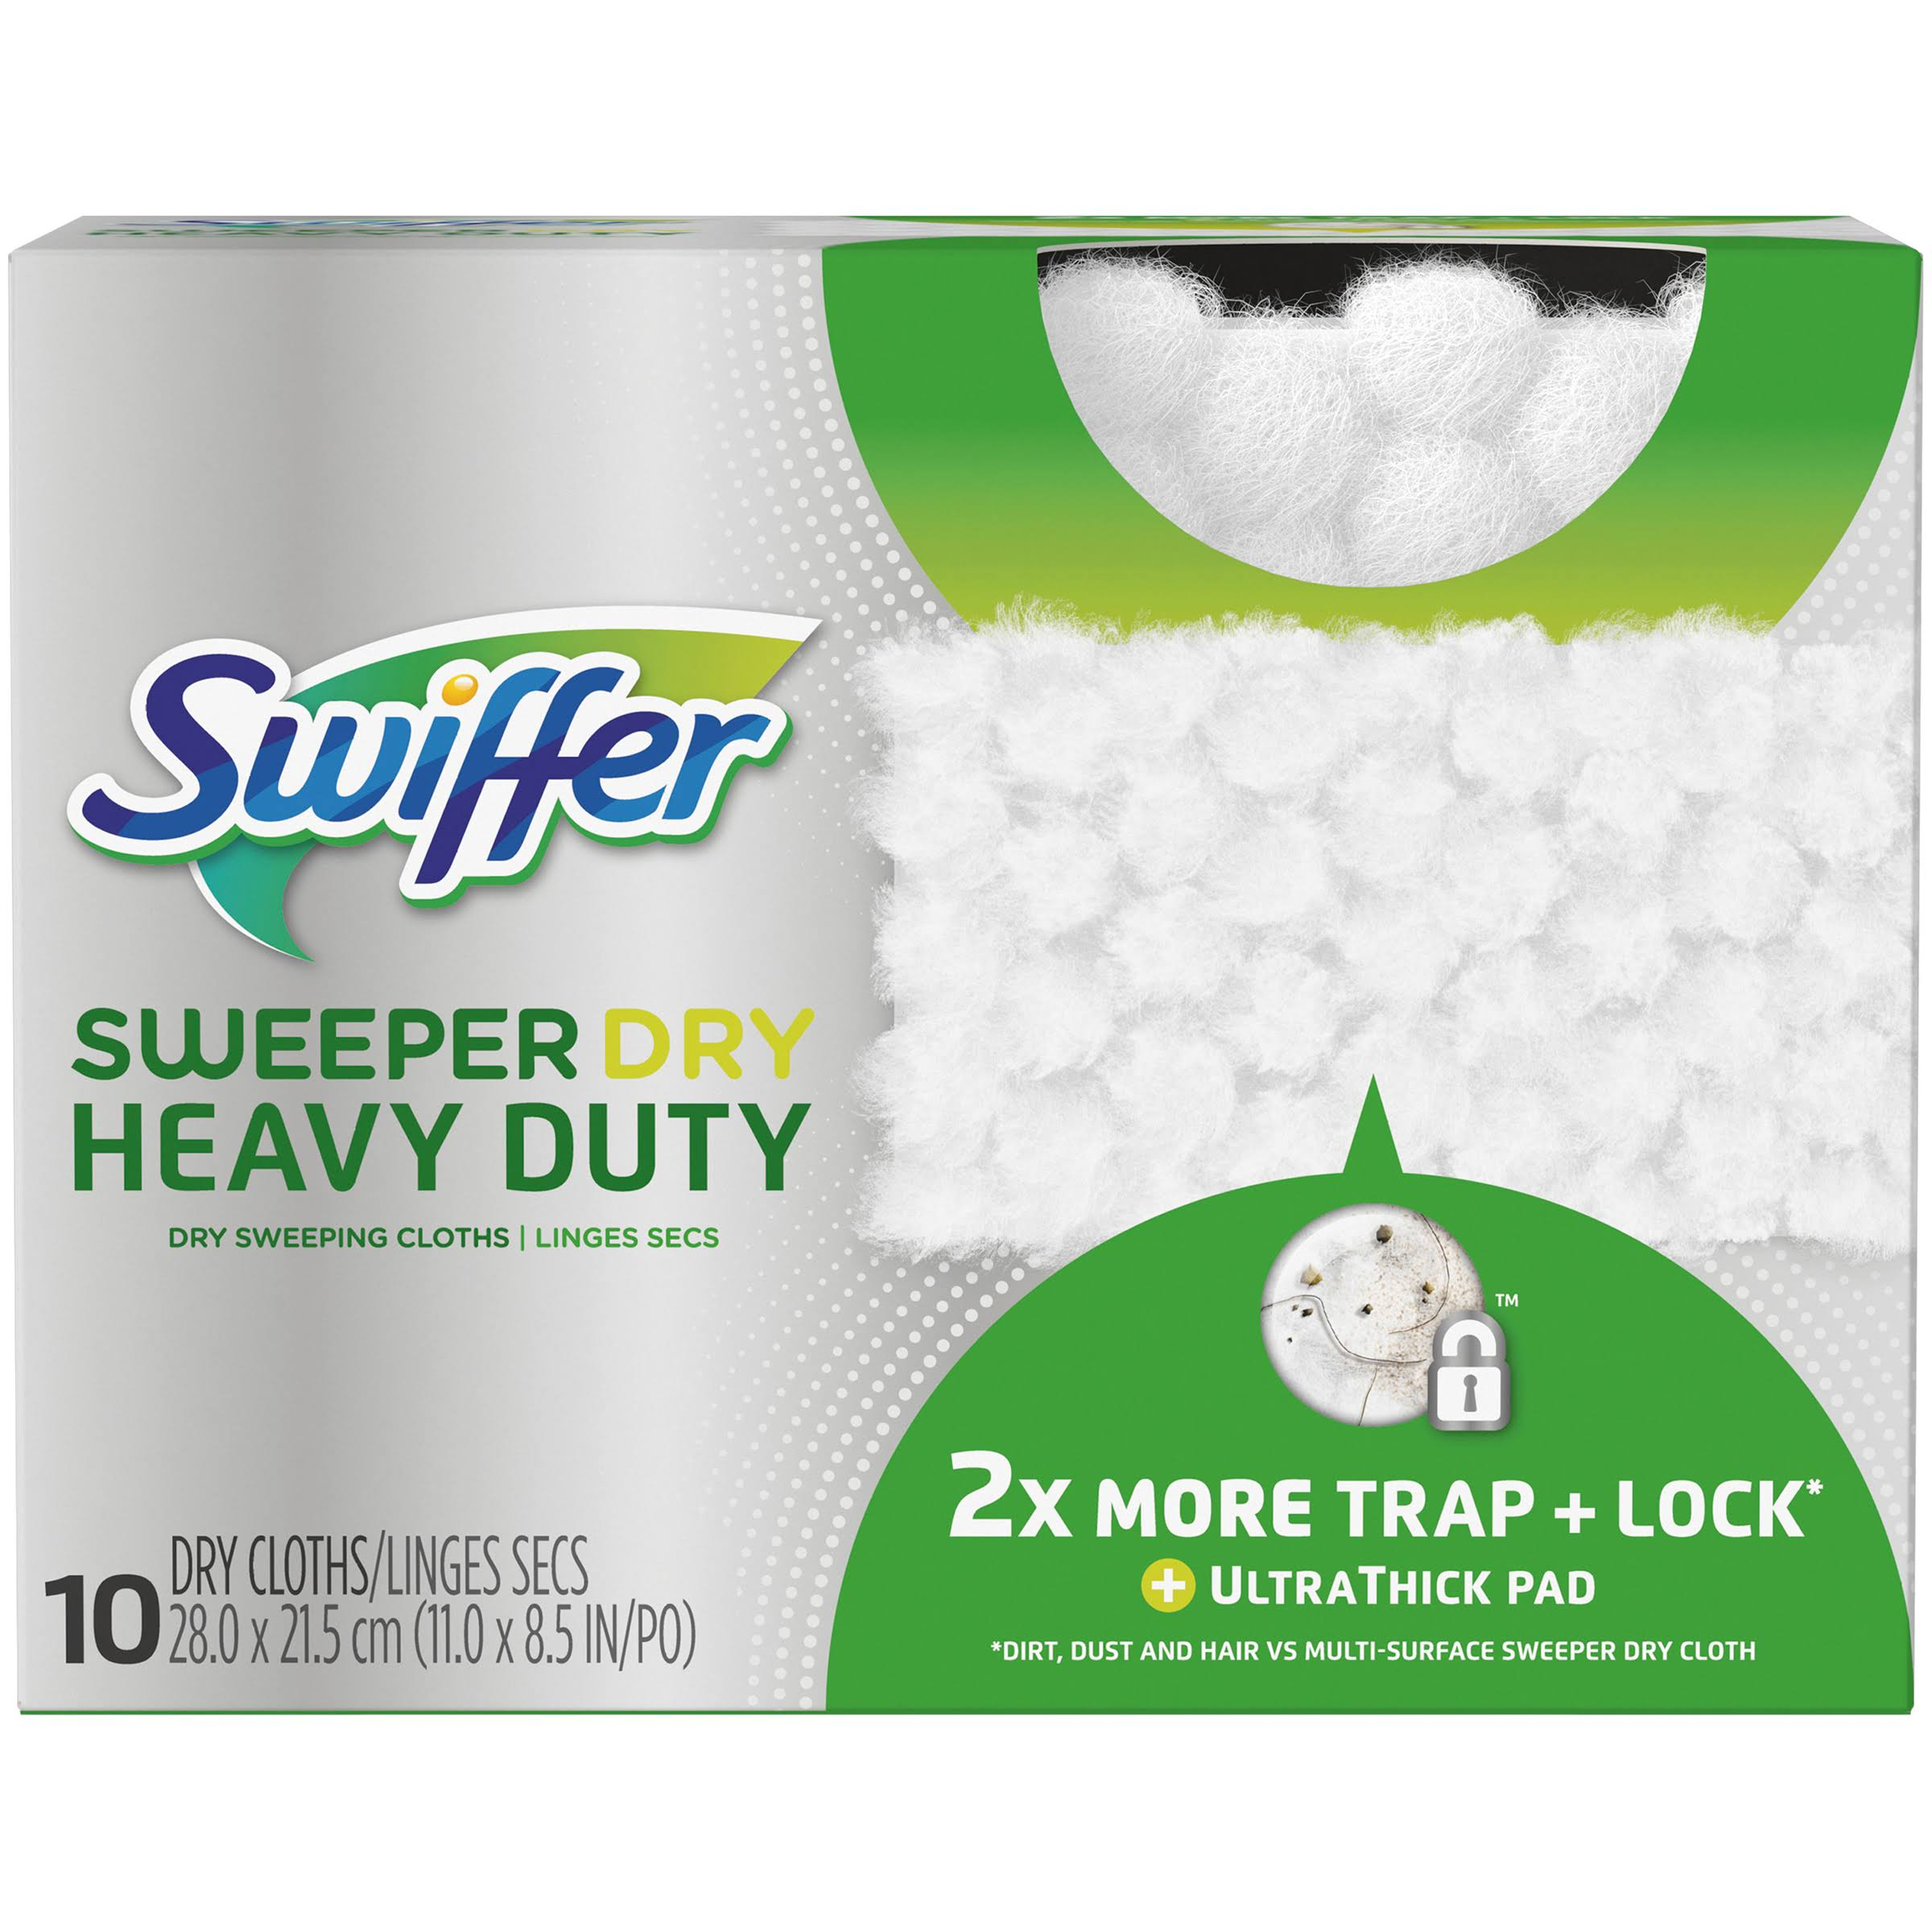 Swiffer Sweeper Dry Heavy Duty Dry Sweeping Cloths - 10ct